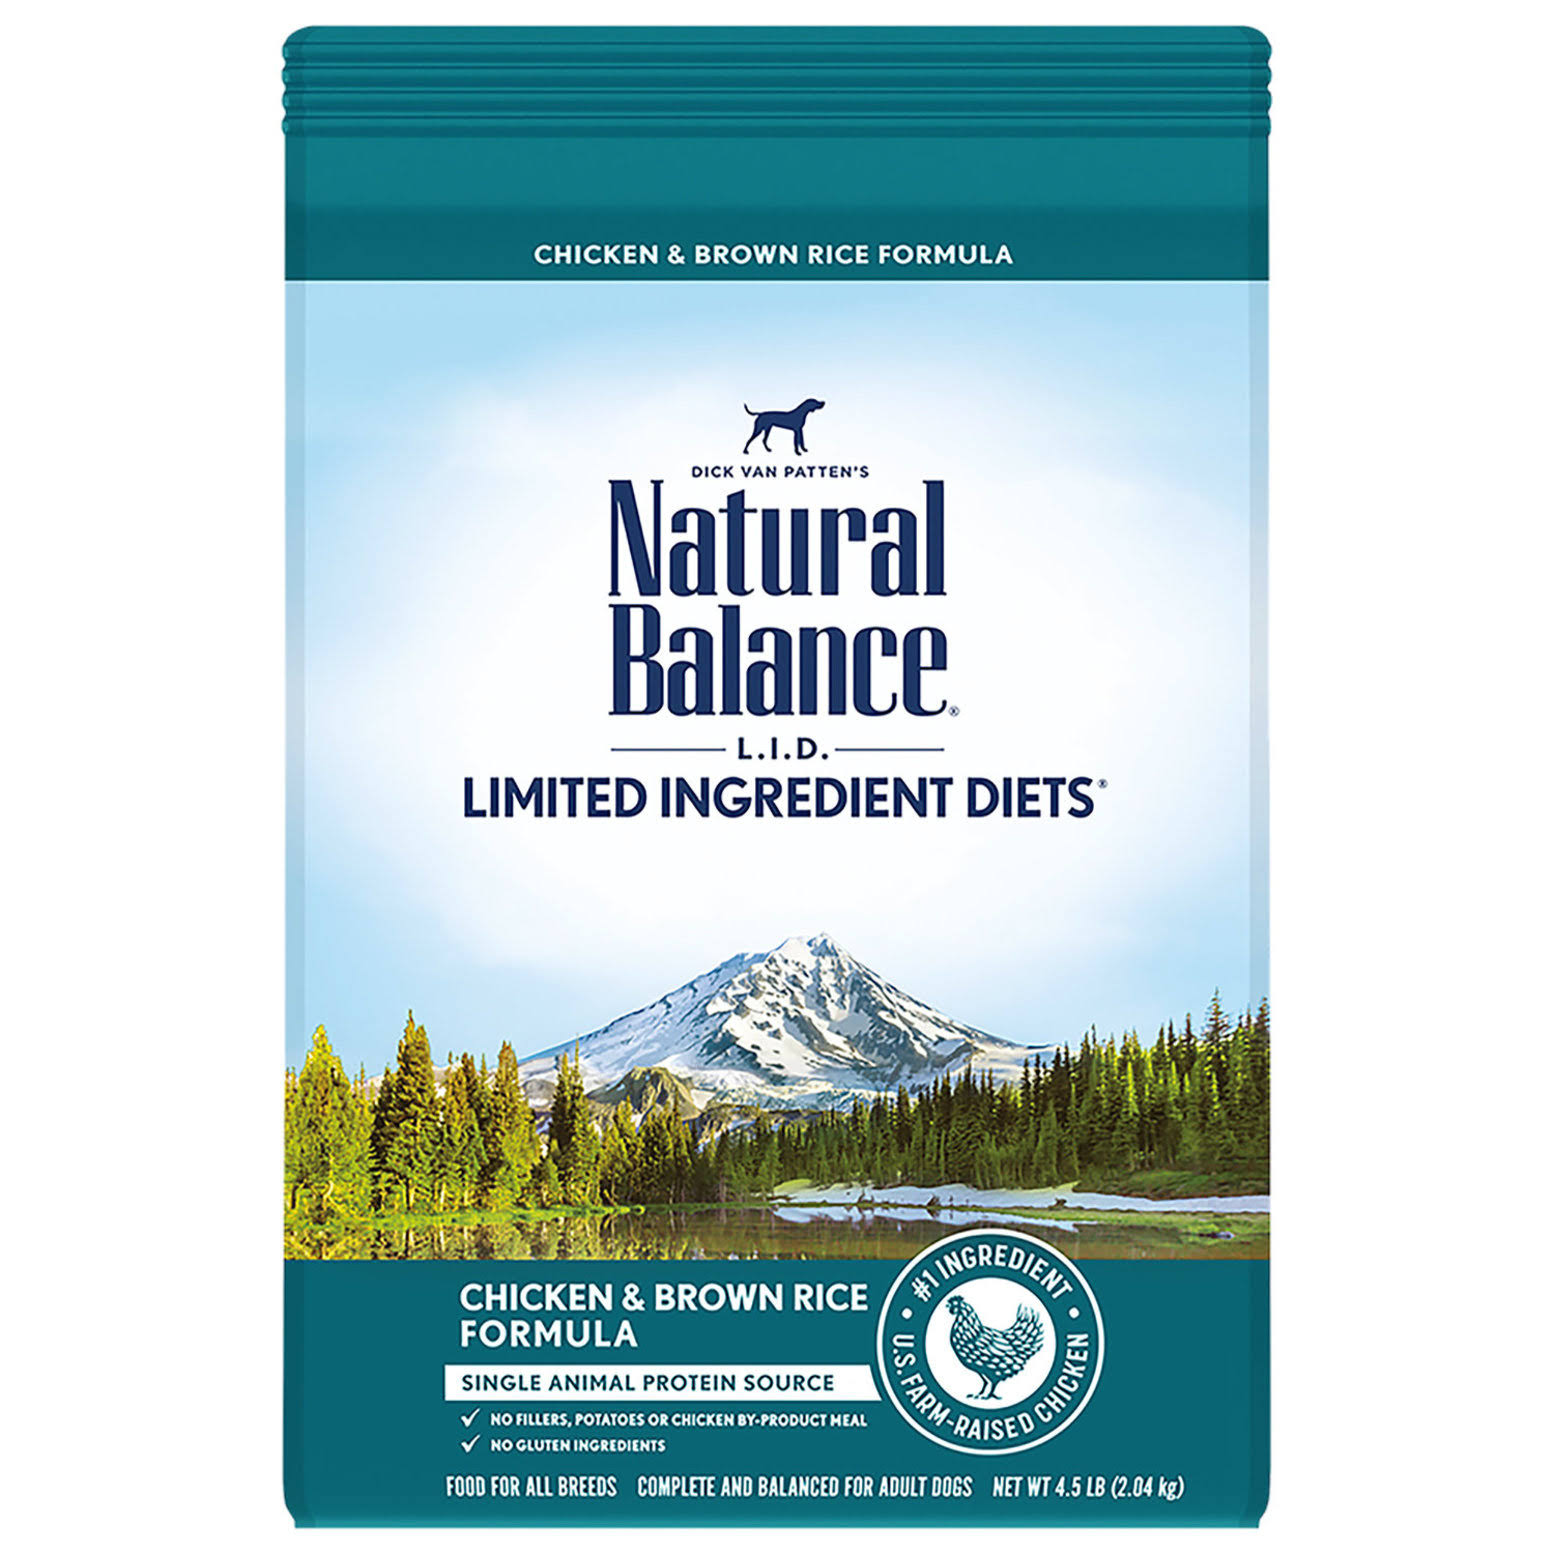 Natural Balance Limited Ingredient Diets Dog Food - Chicken & Brown Rice Formula, 2.64kg